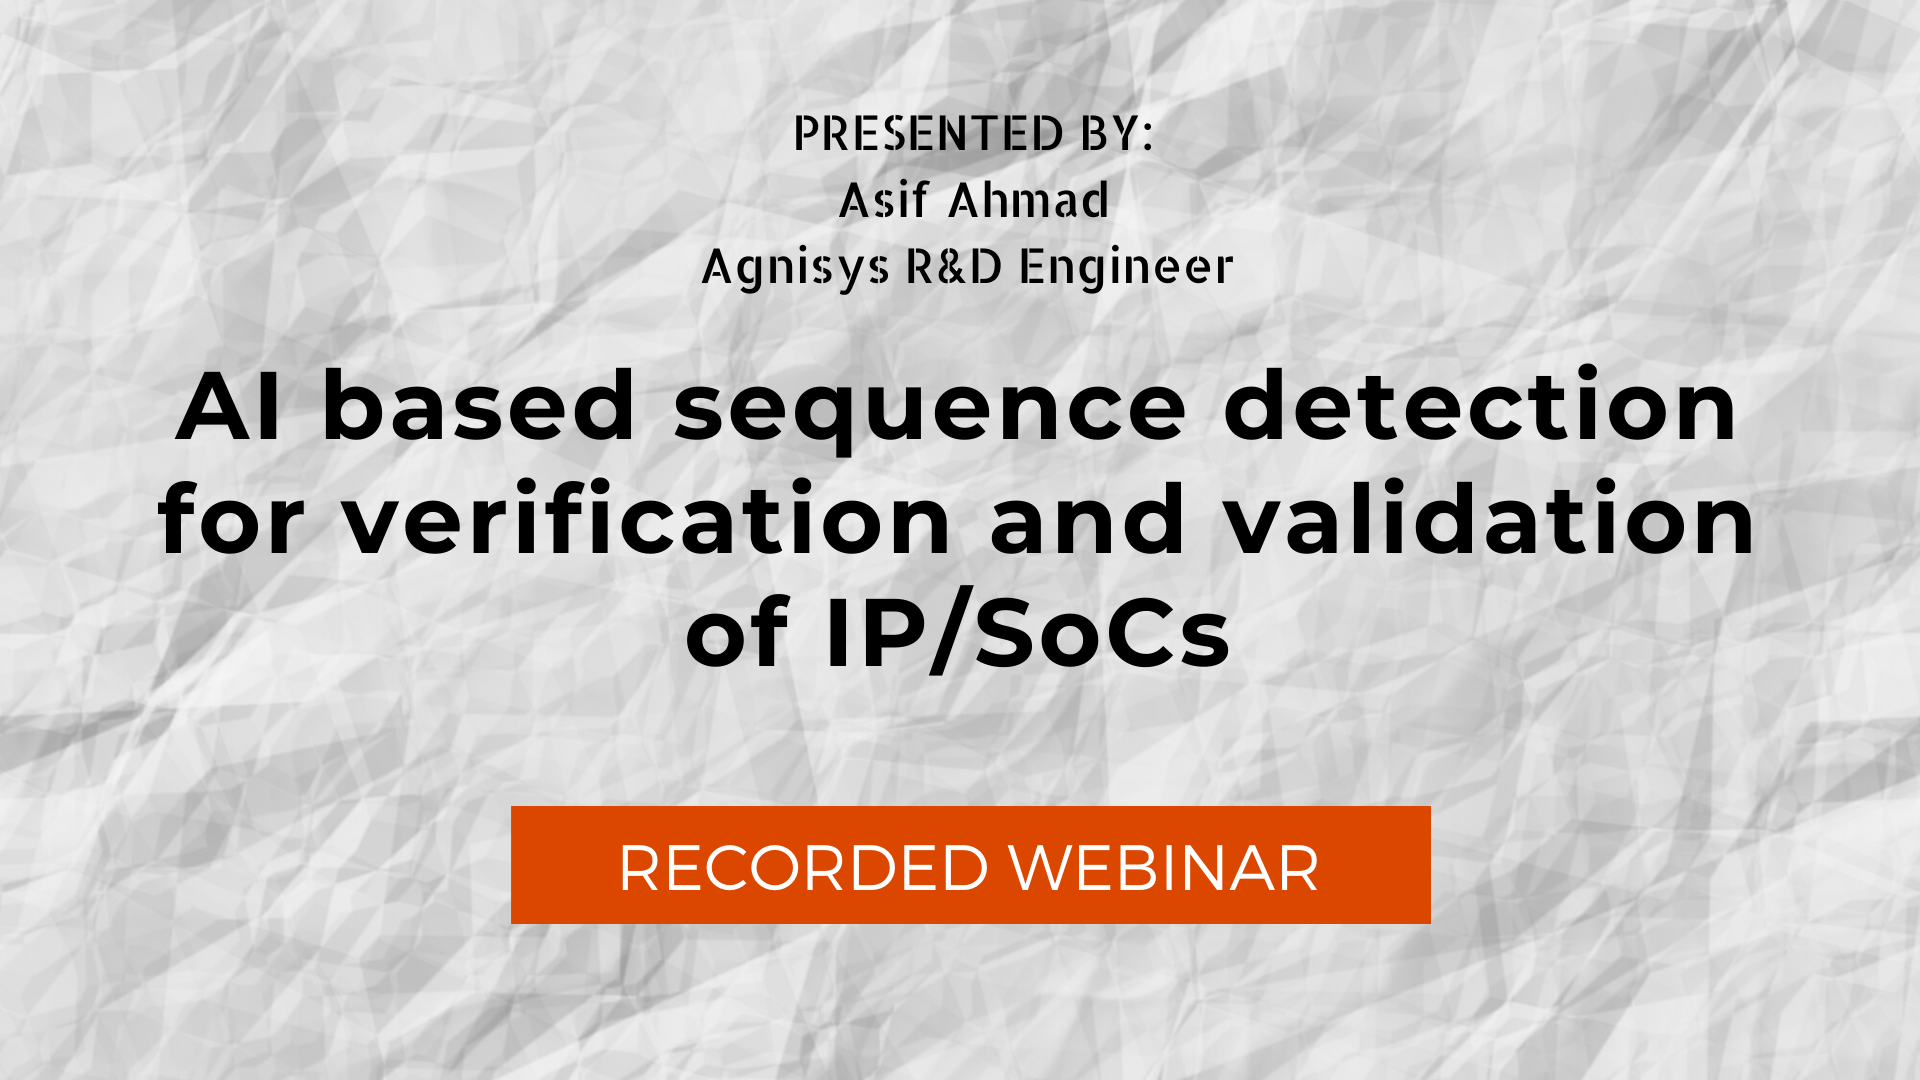 AI based sequence detection for verification and validation of IP/SoCs